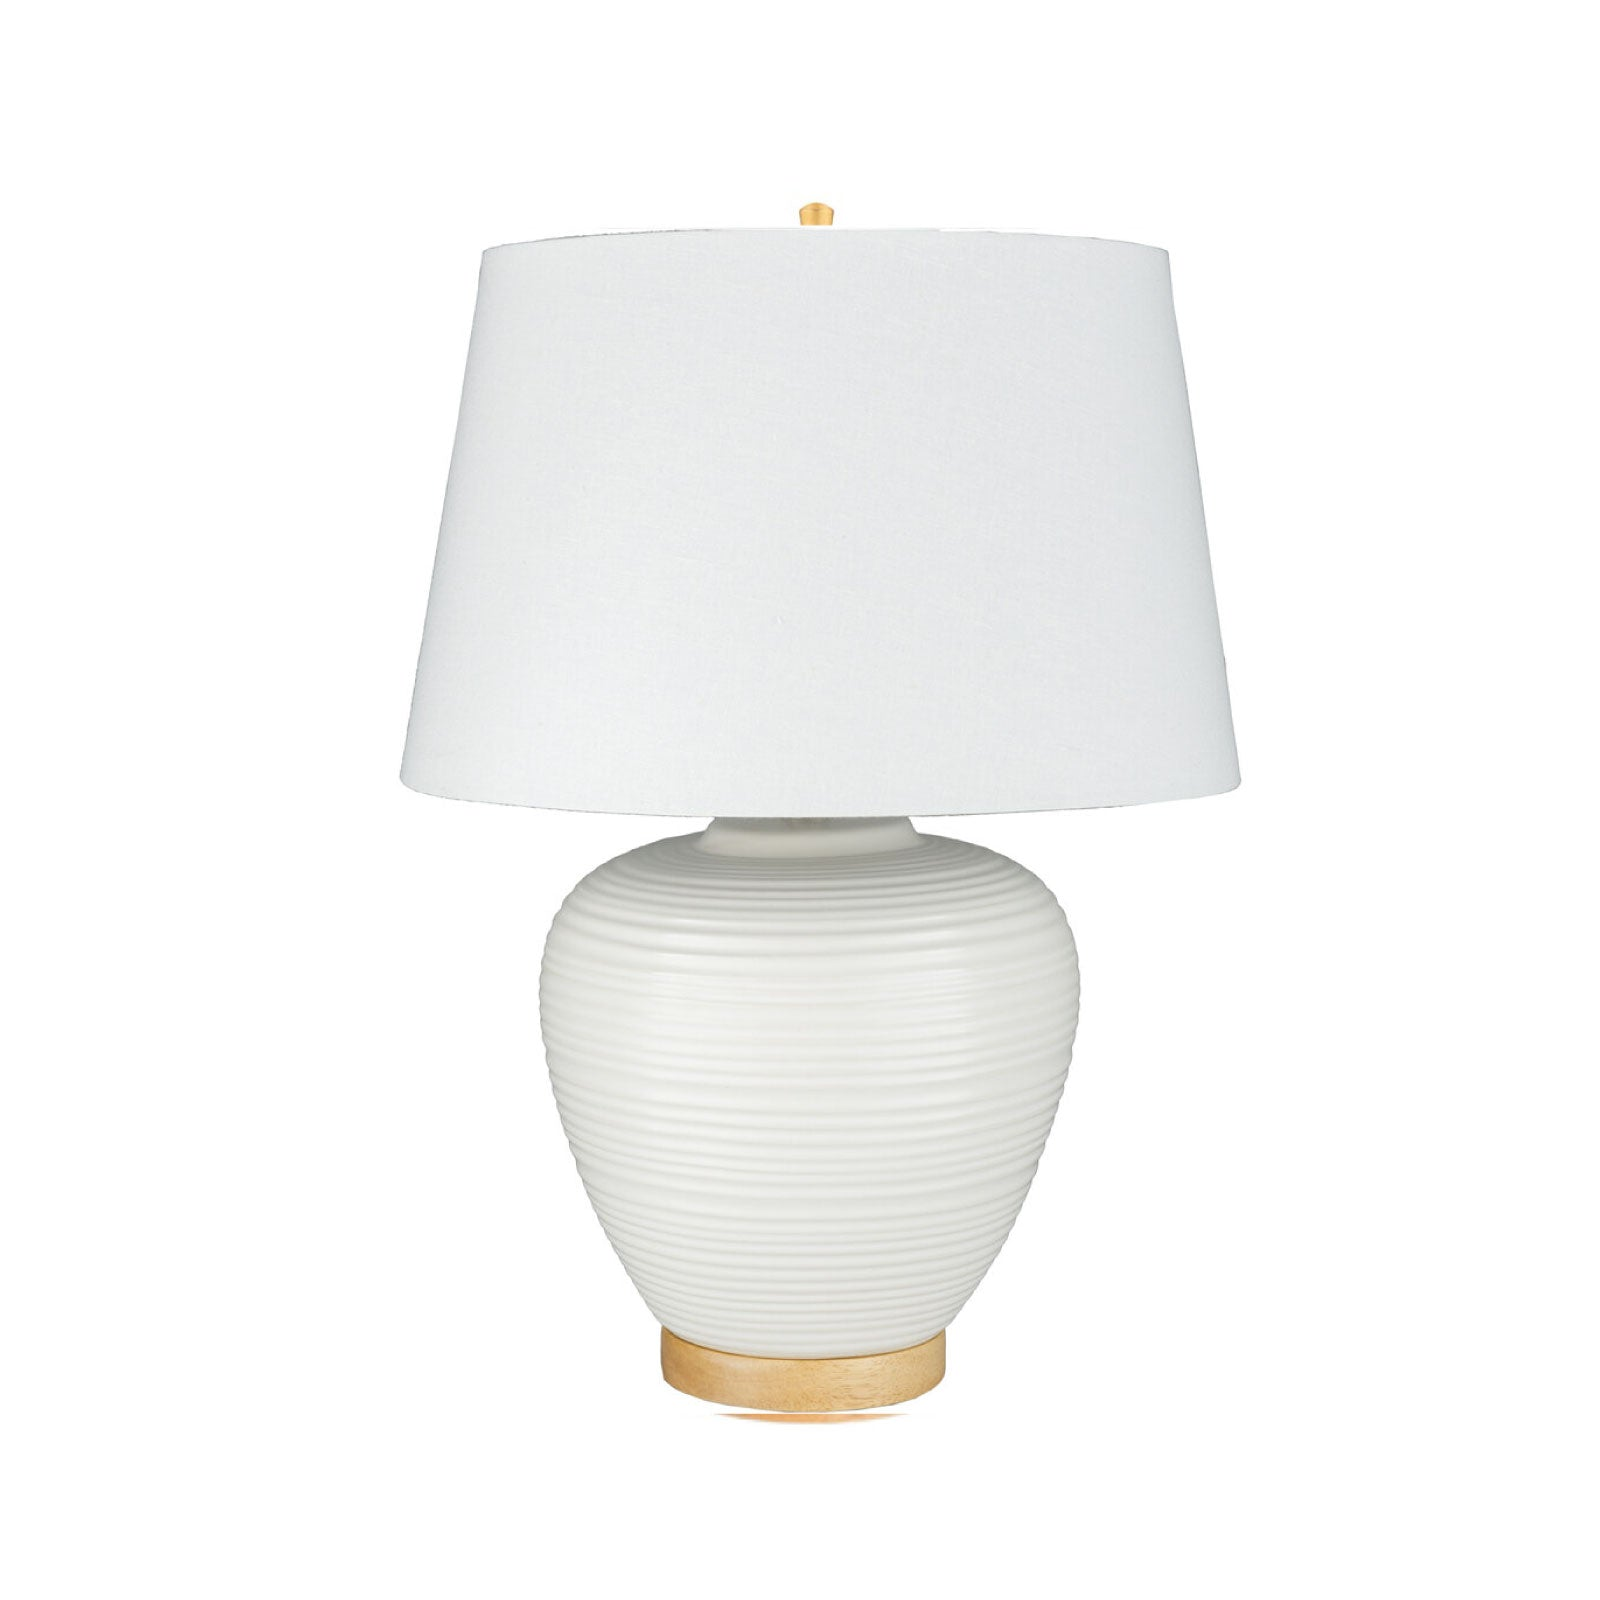 Hoxly Lamp in Cream